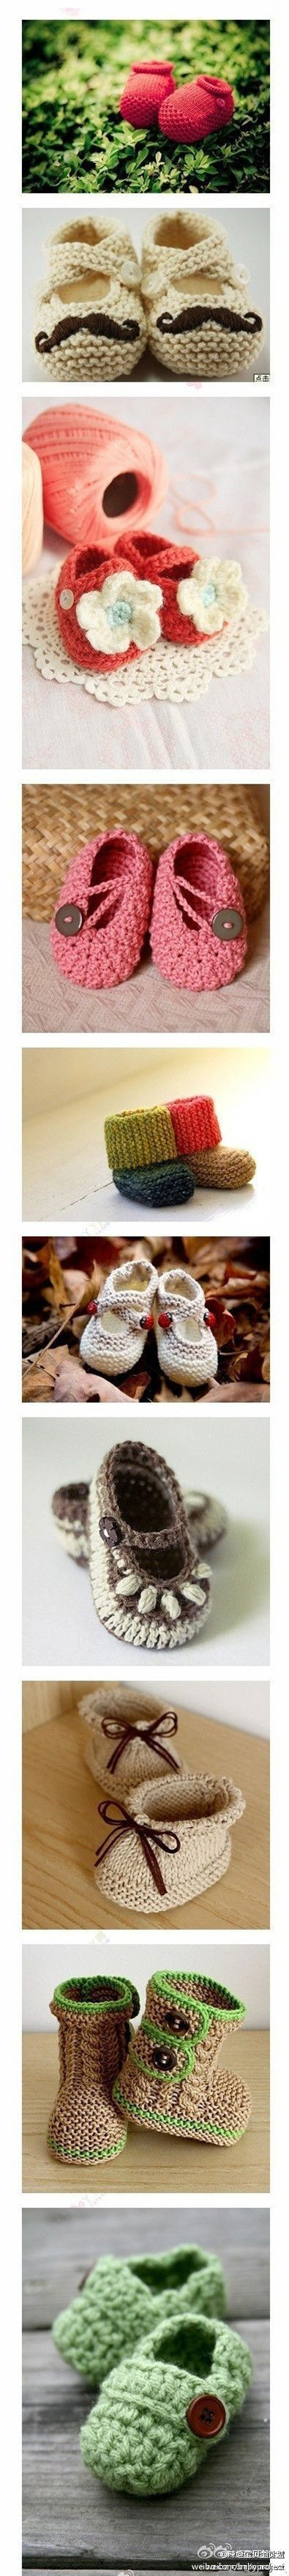 Soooo cute!! crotchet baby shoes